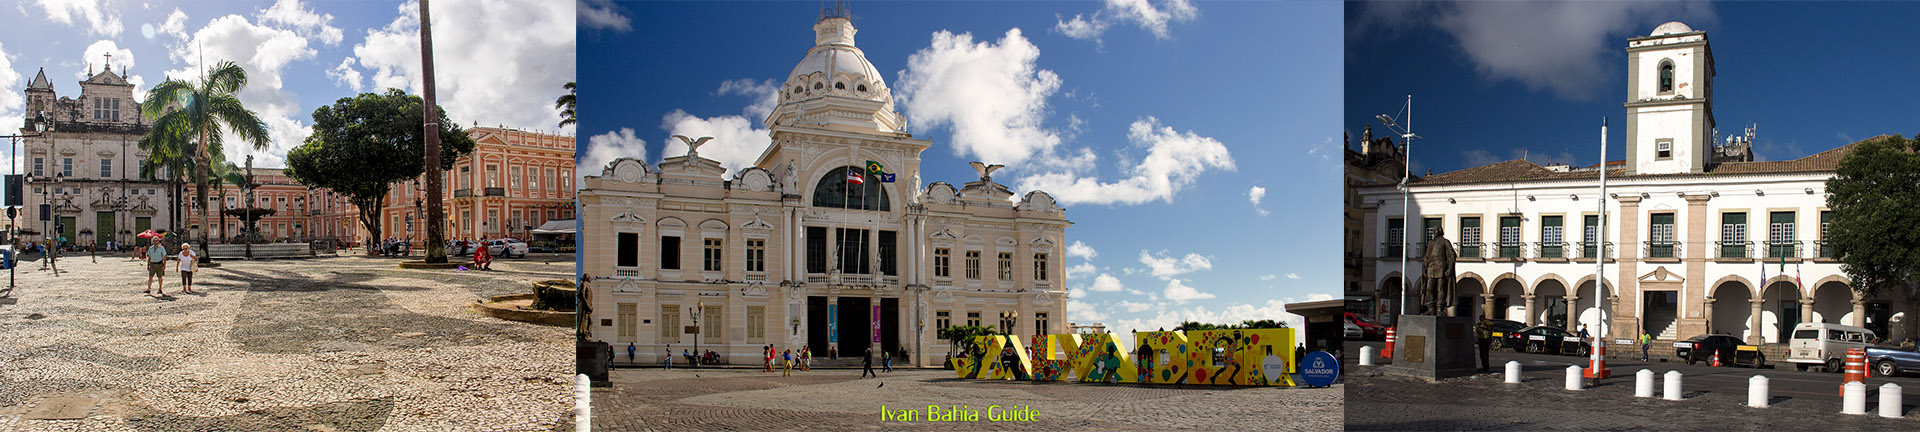 day-tour / visit Salvador da Bahia from your cruise ship with Ivan Bahia private Guide, exclusive photography #ivanbahiaguide #toursbylocals @fernandobingre #bahiametisse #ssalovers #ivanbahiatravelguide #salvador